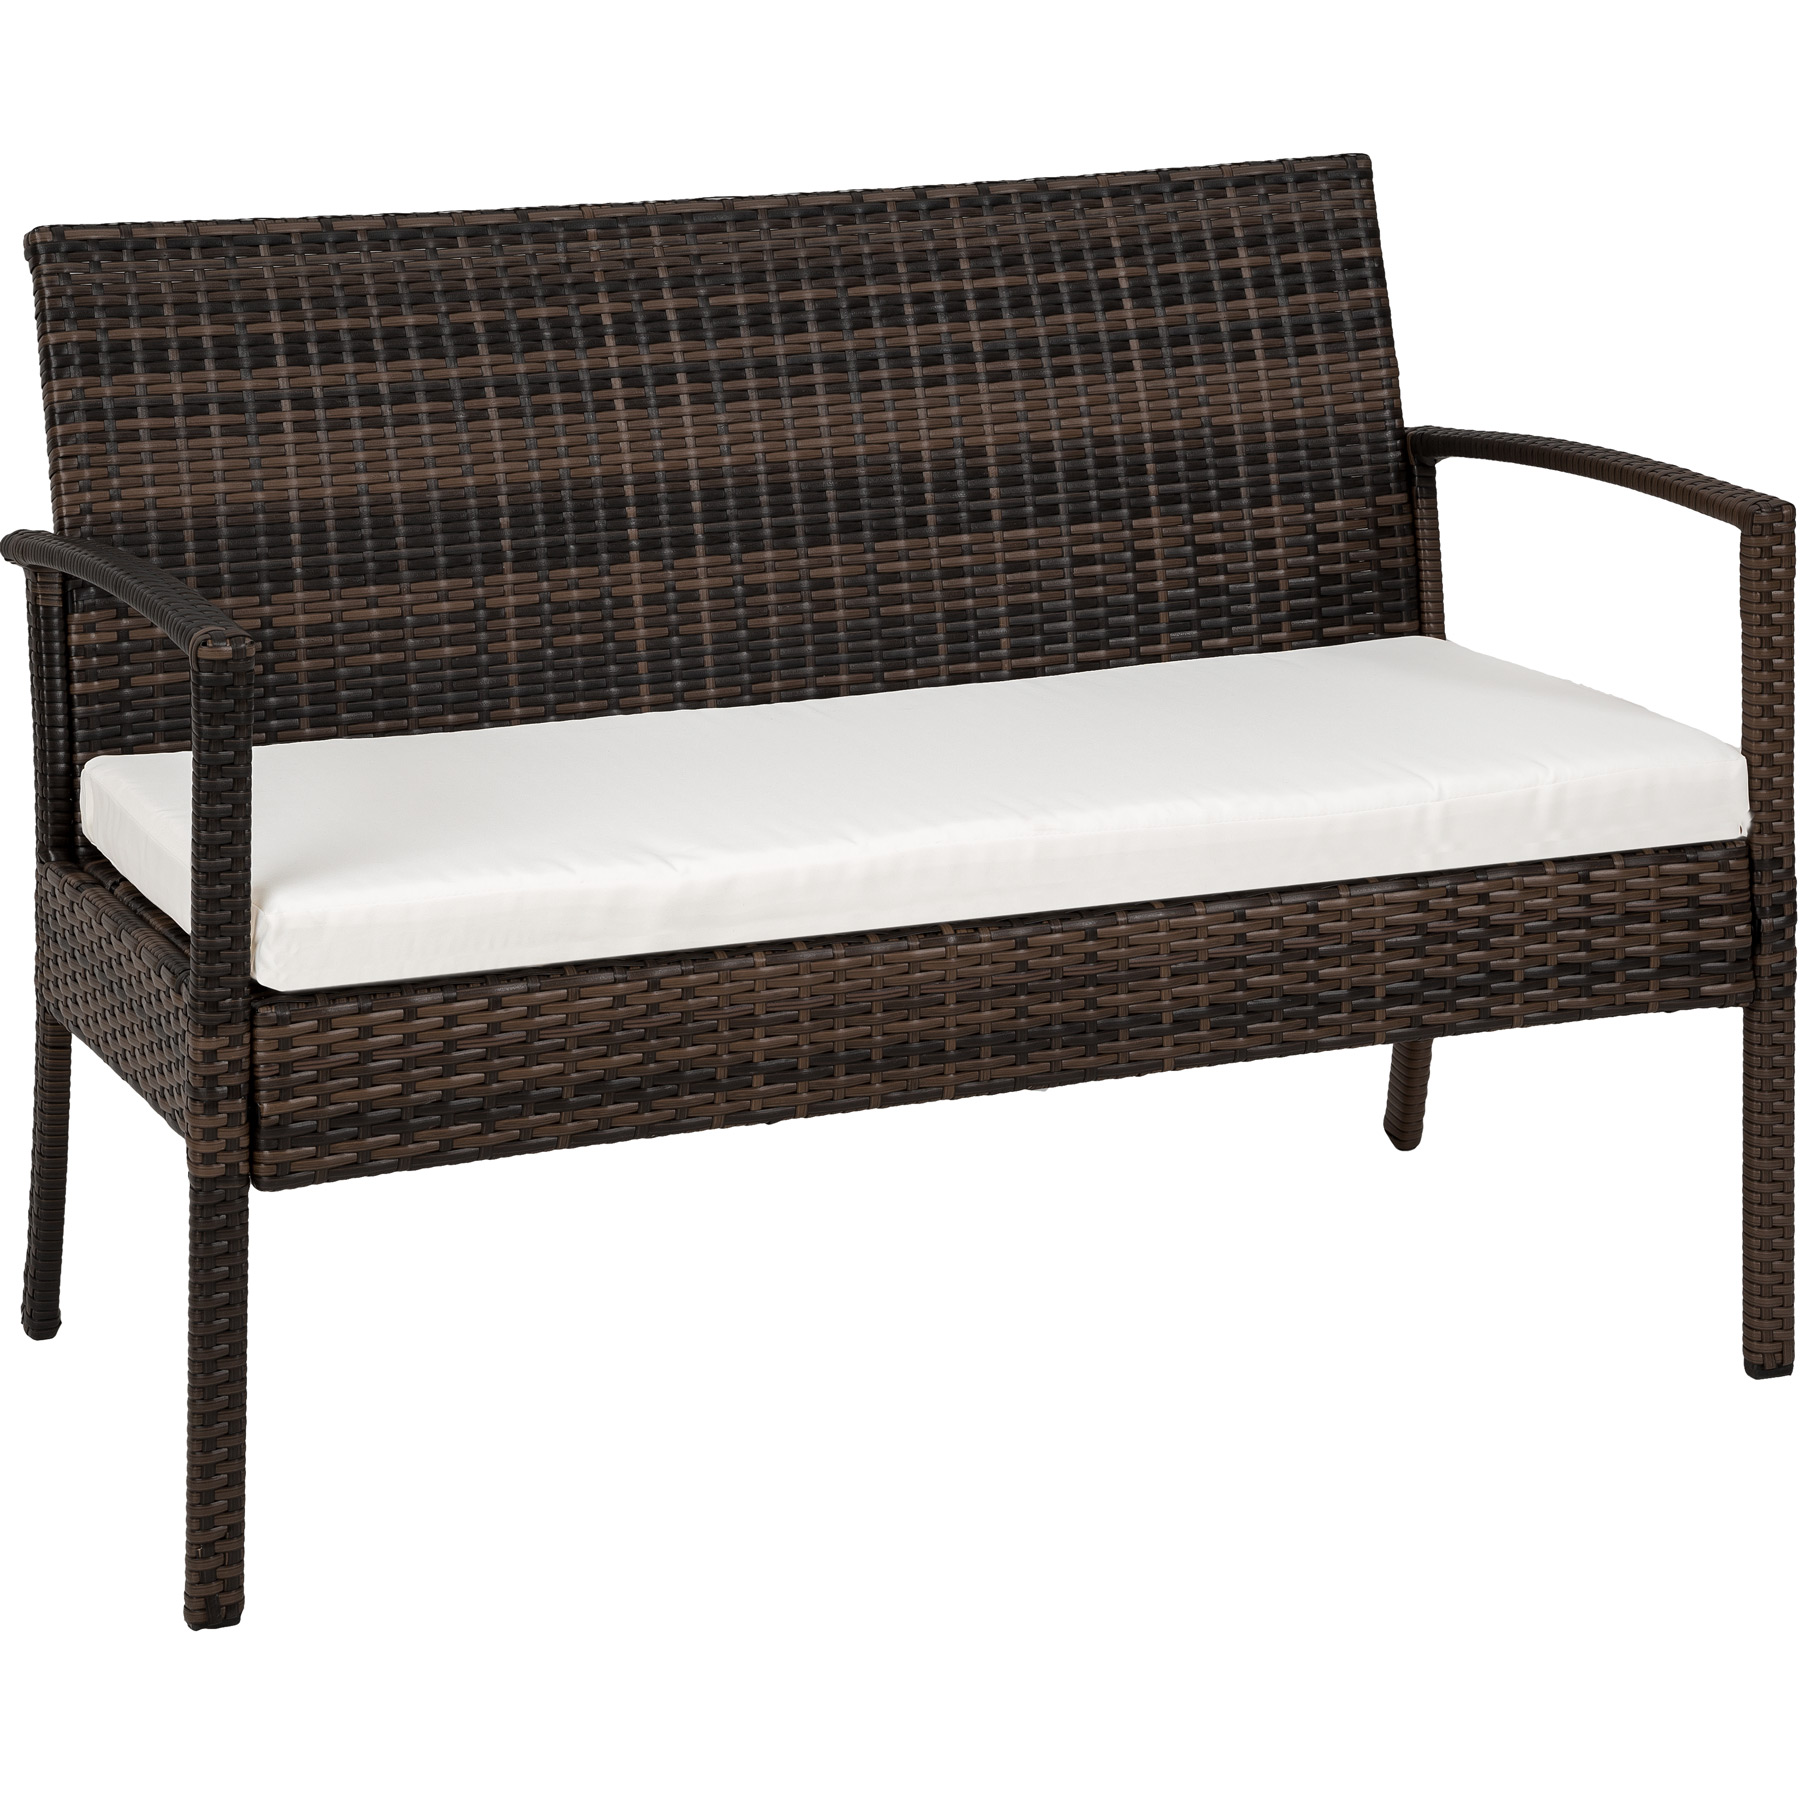 Poly Rattan Garden Furniture 2 Chairs Bench Table Set Outdoor Patio Wicker Brown Ebay